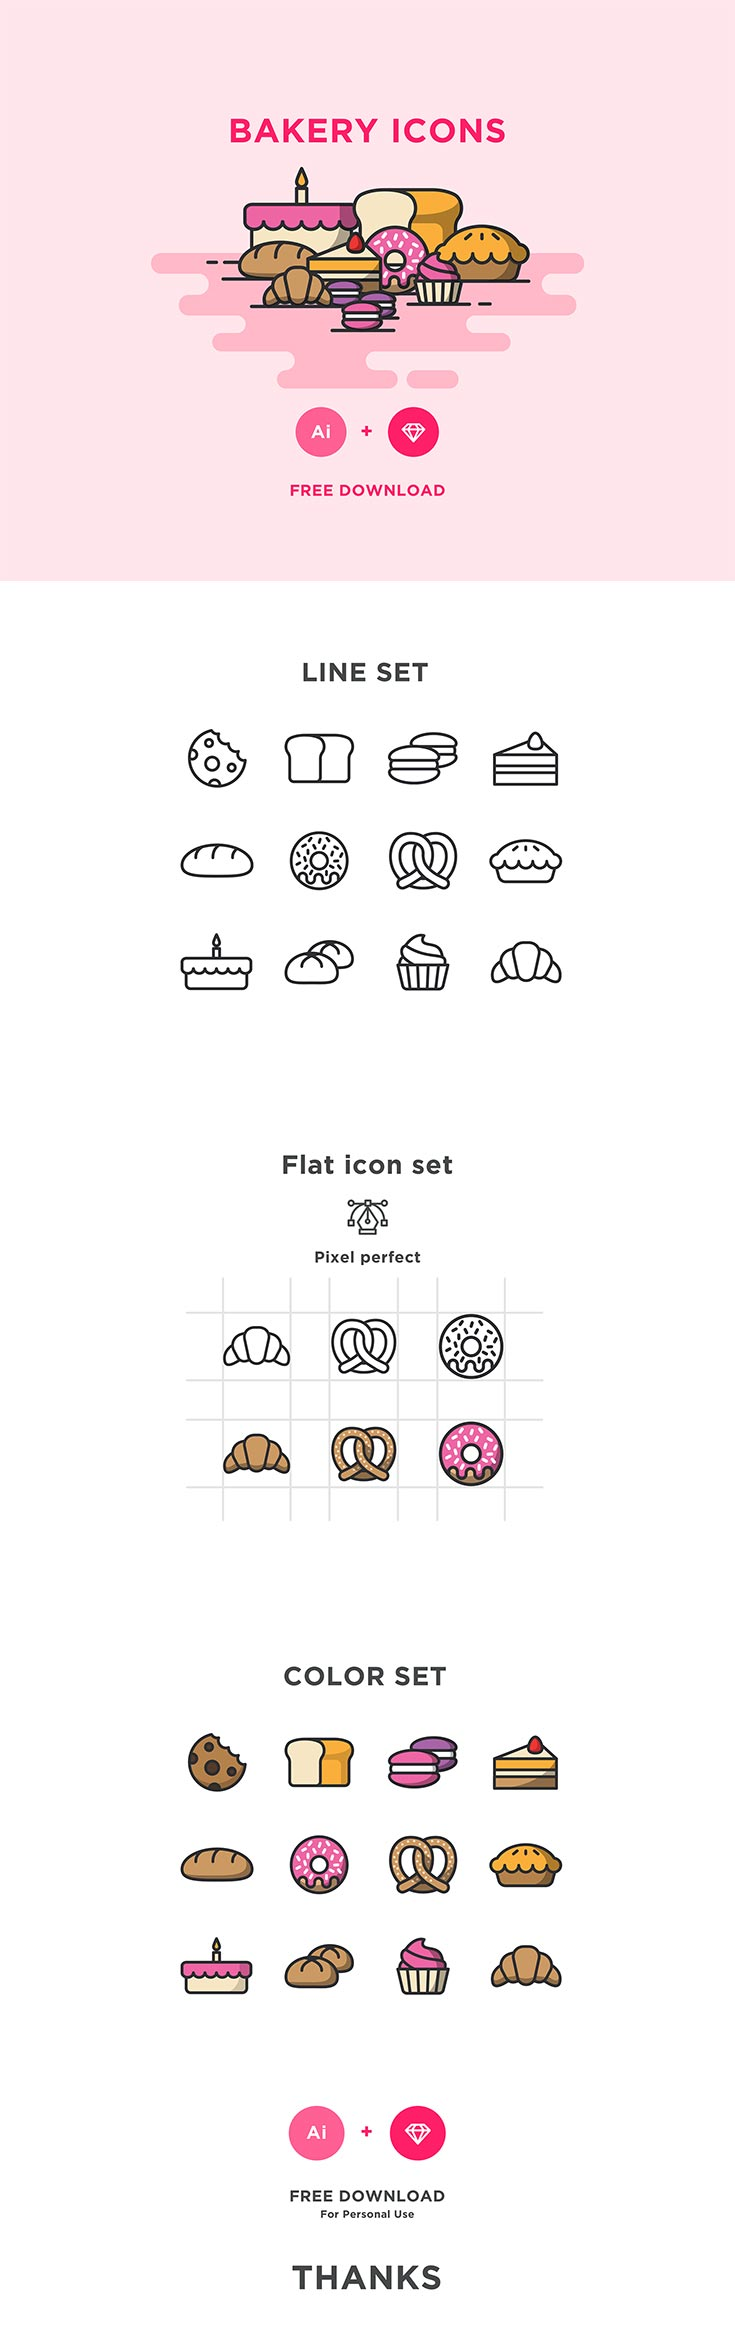 Free Bakery Icons Pack